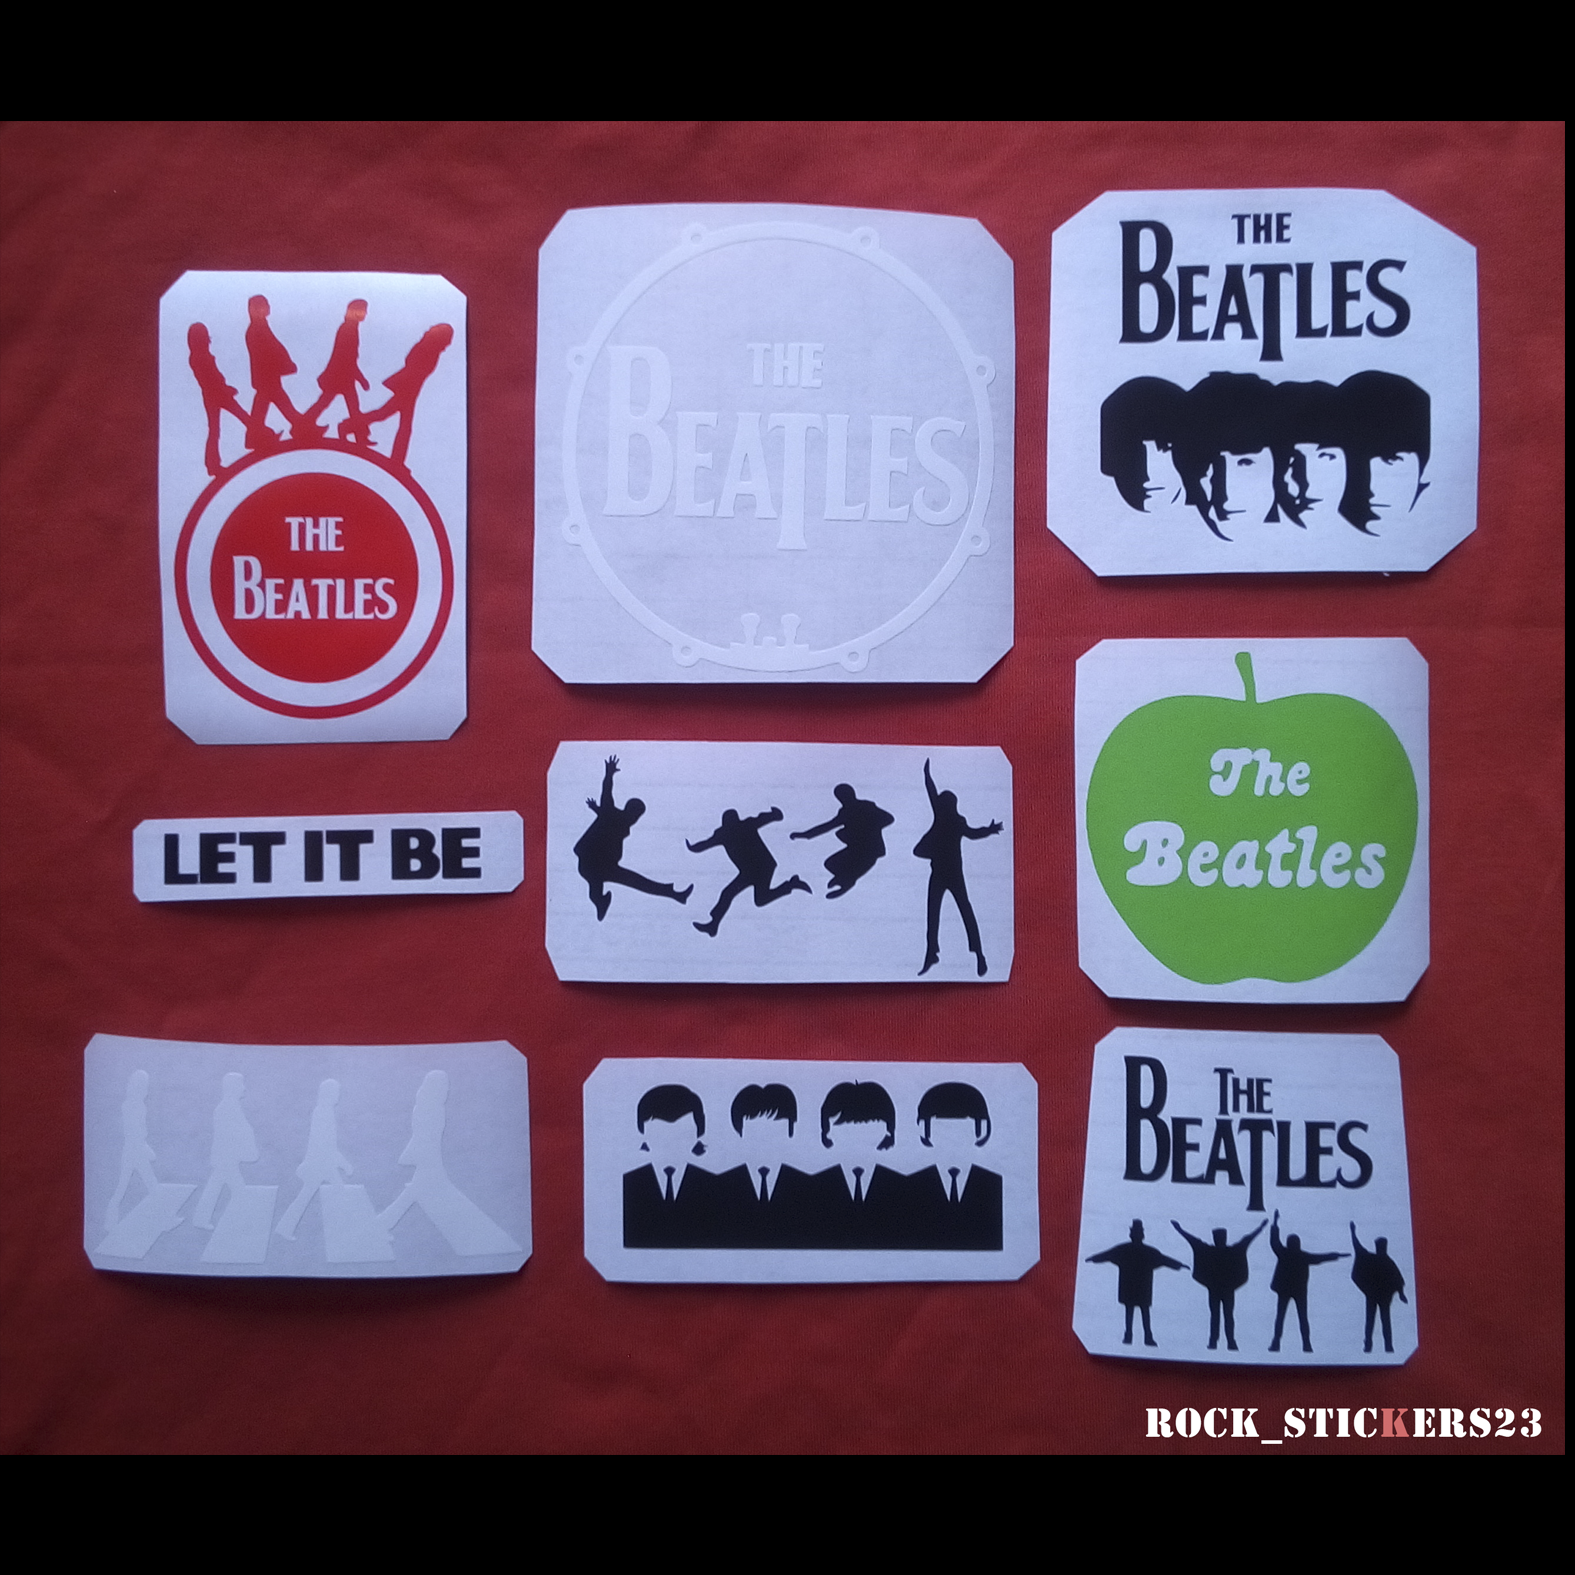 The Beatles band stickers